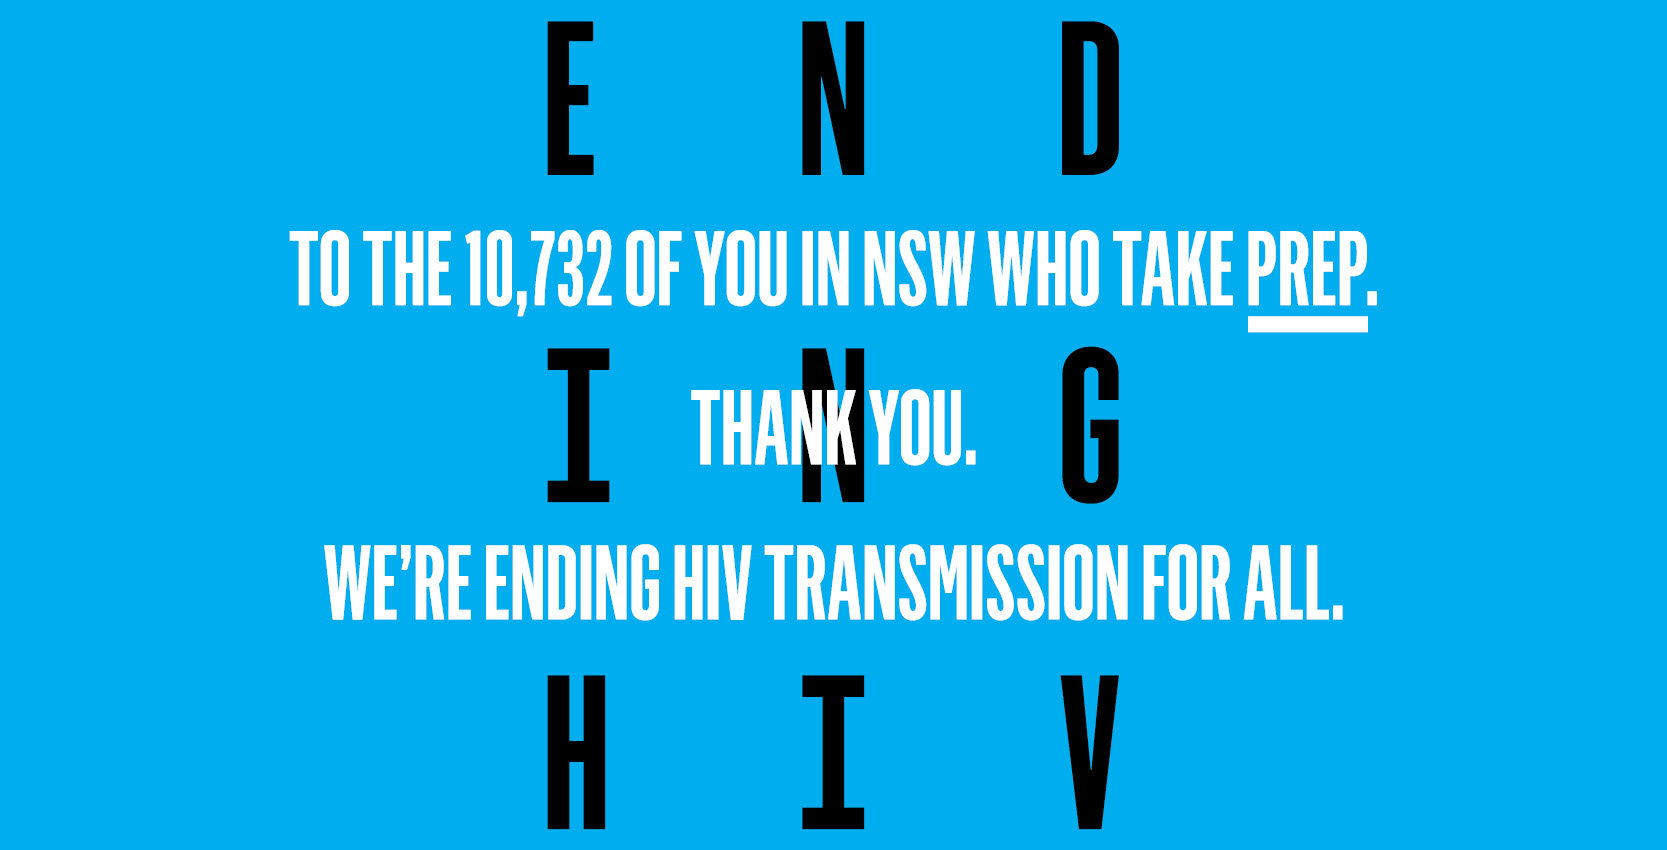 To the 10,732 of you in NSW who take PrEP, thank you.